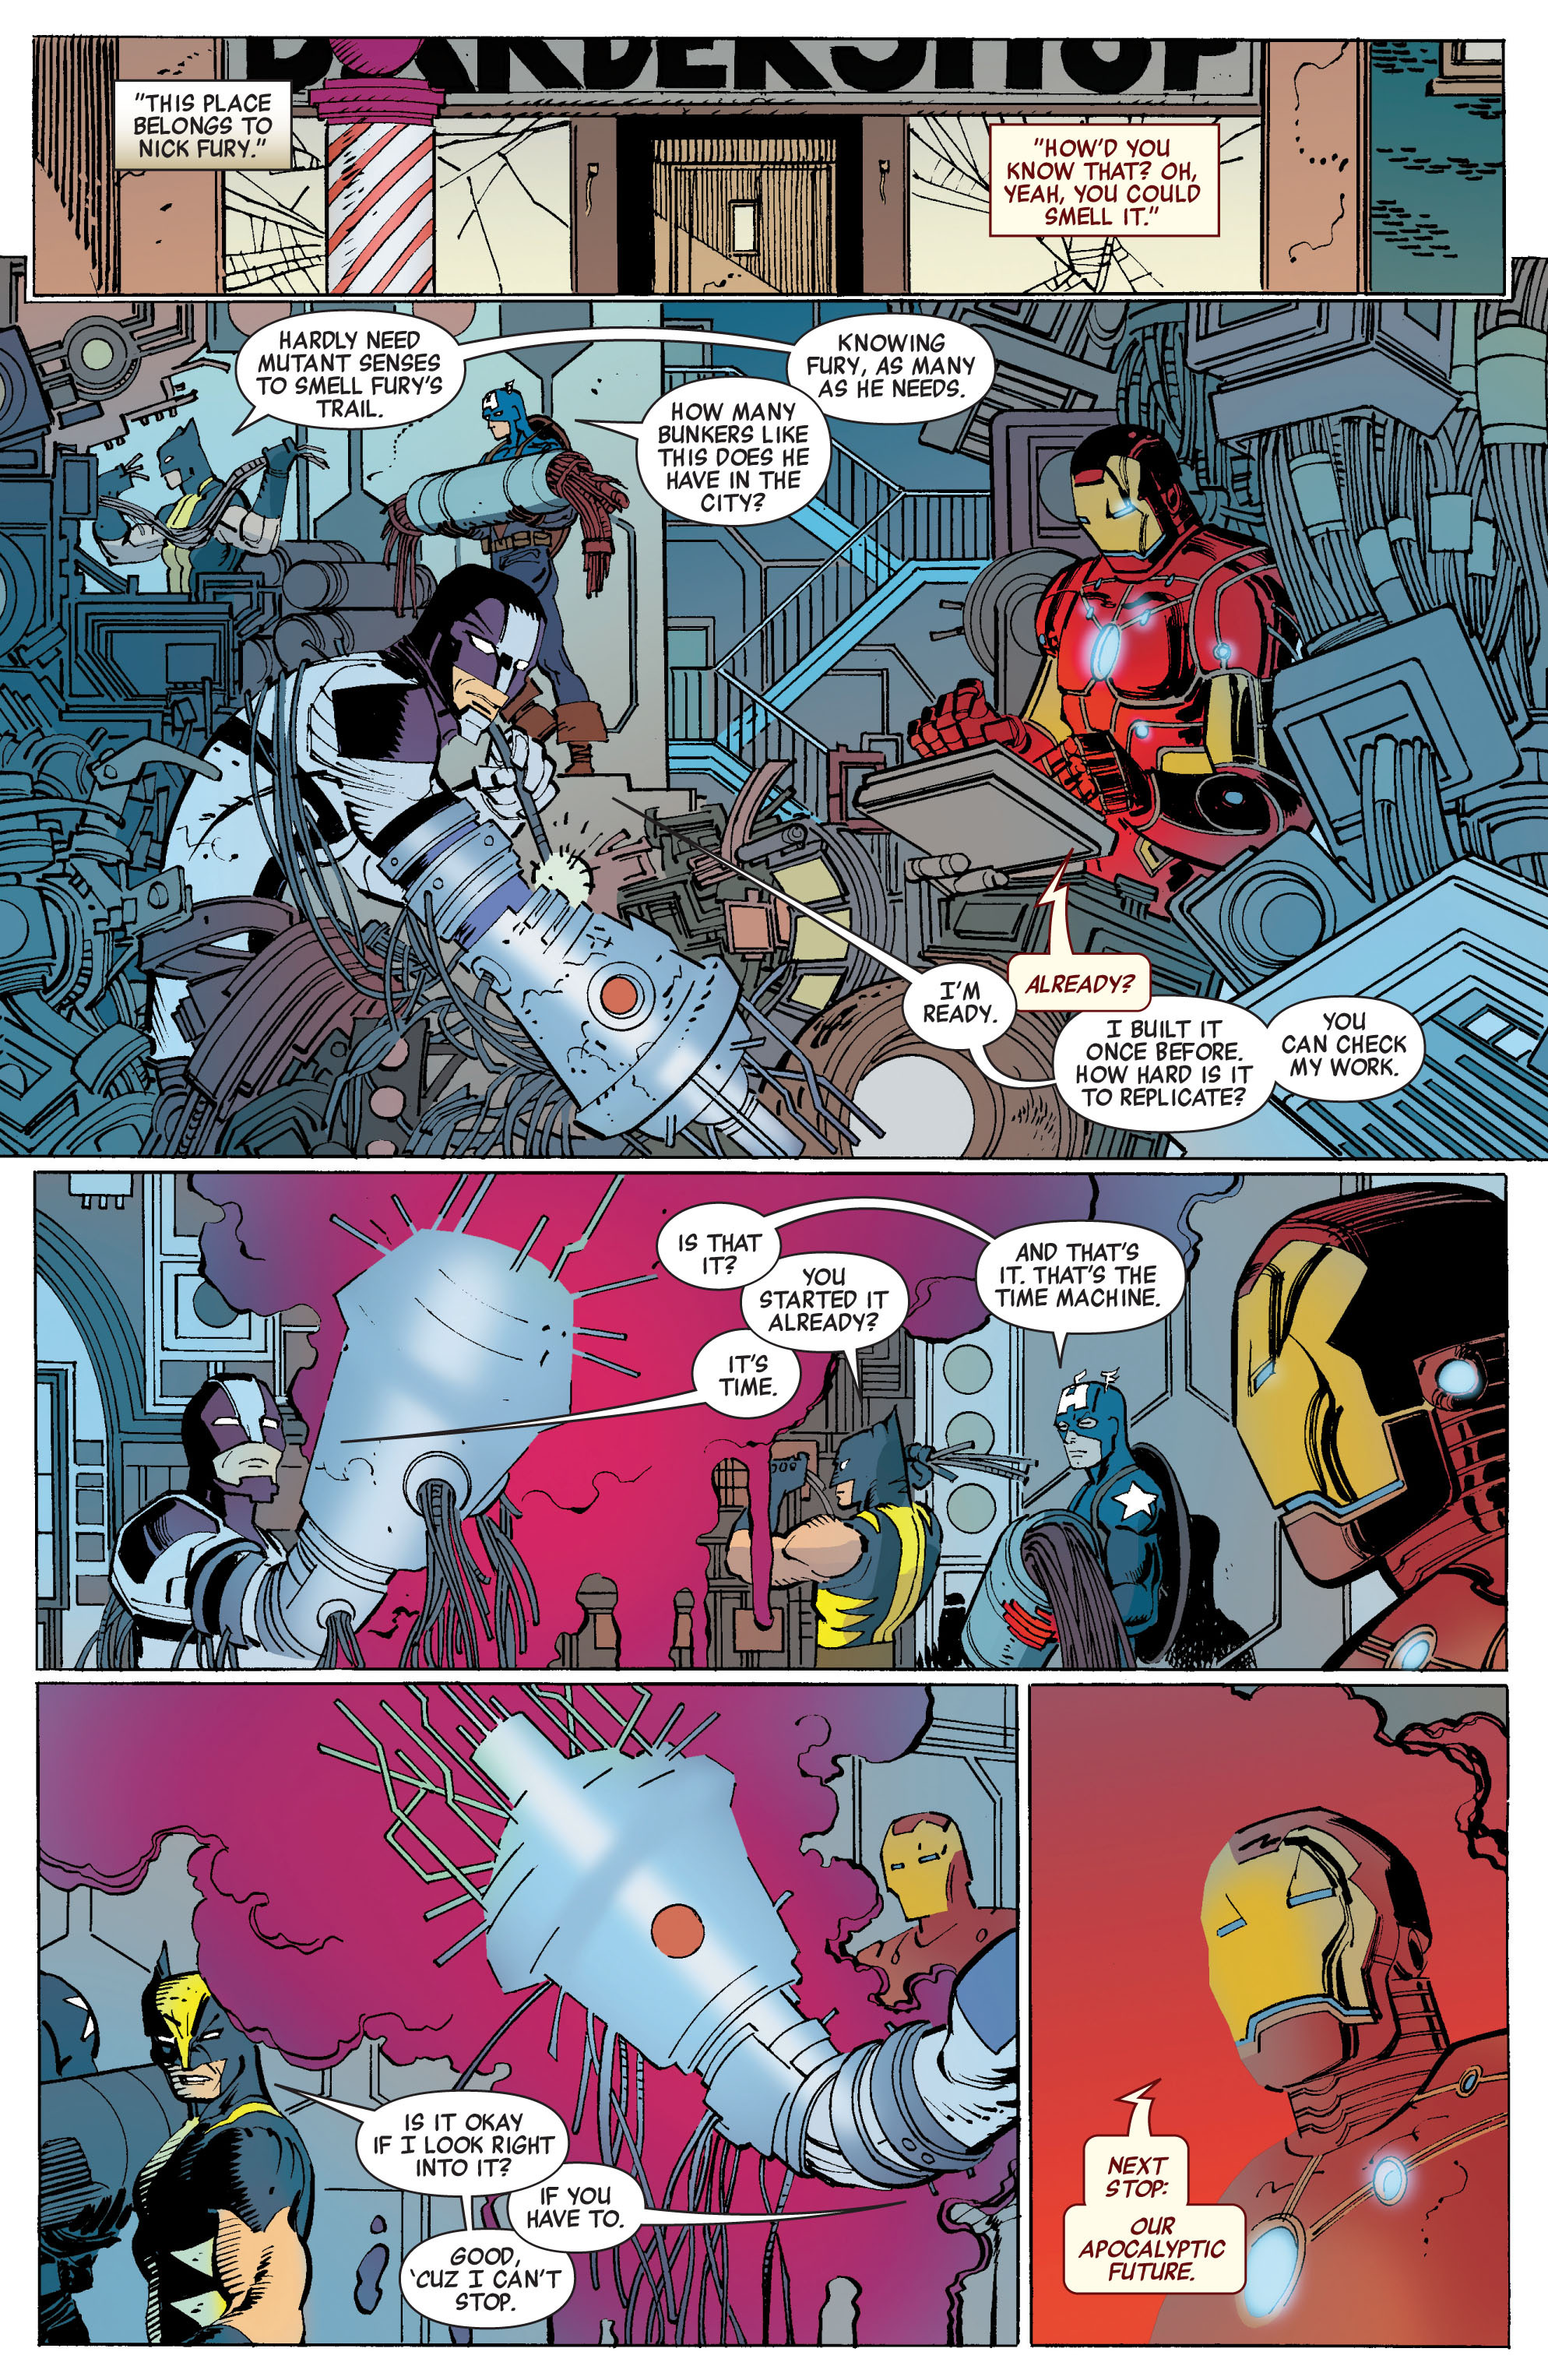 Read online Avengers (2010) comic -  Issue #3 - 21